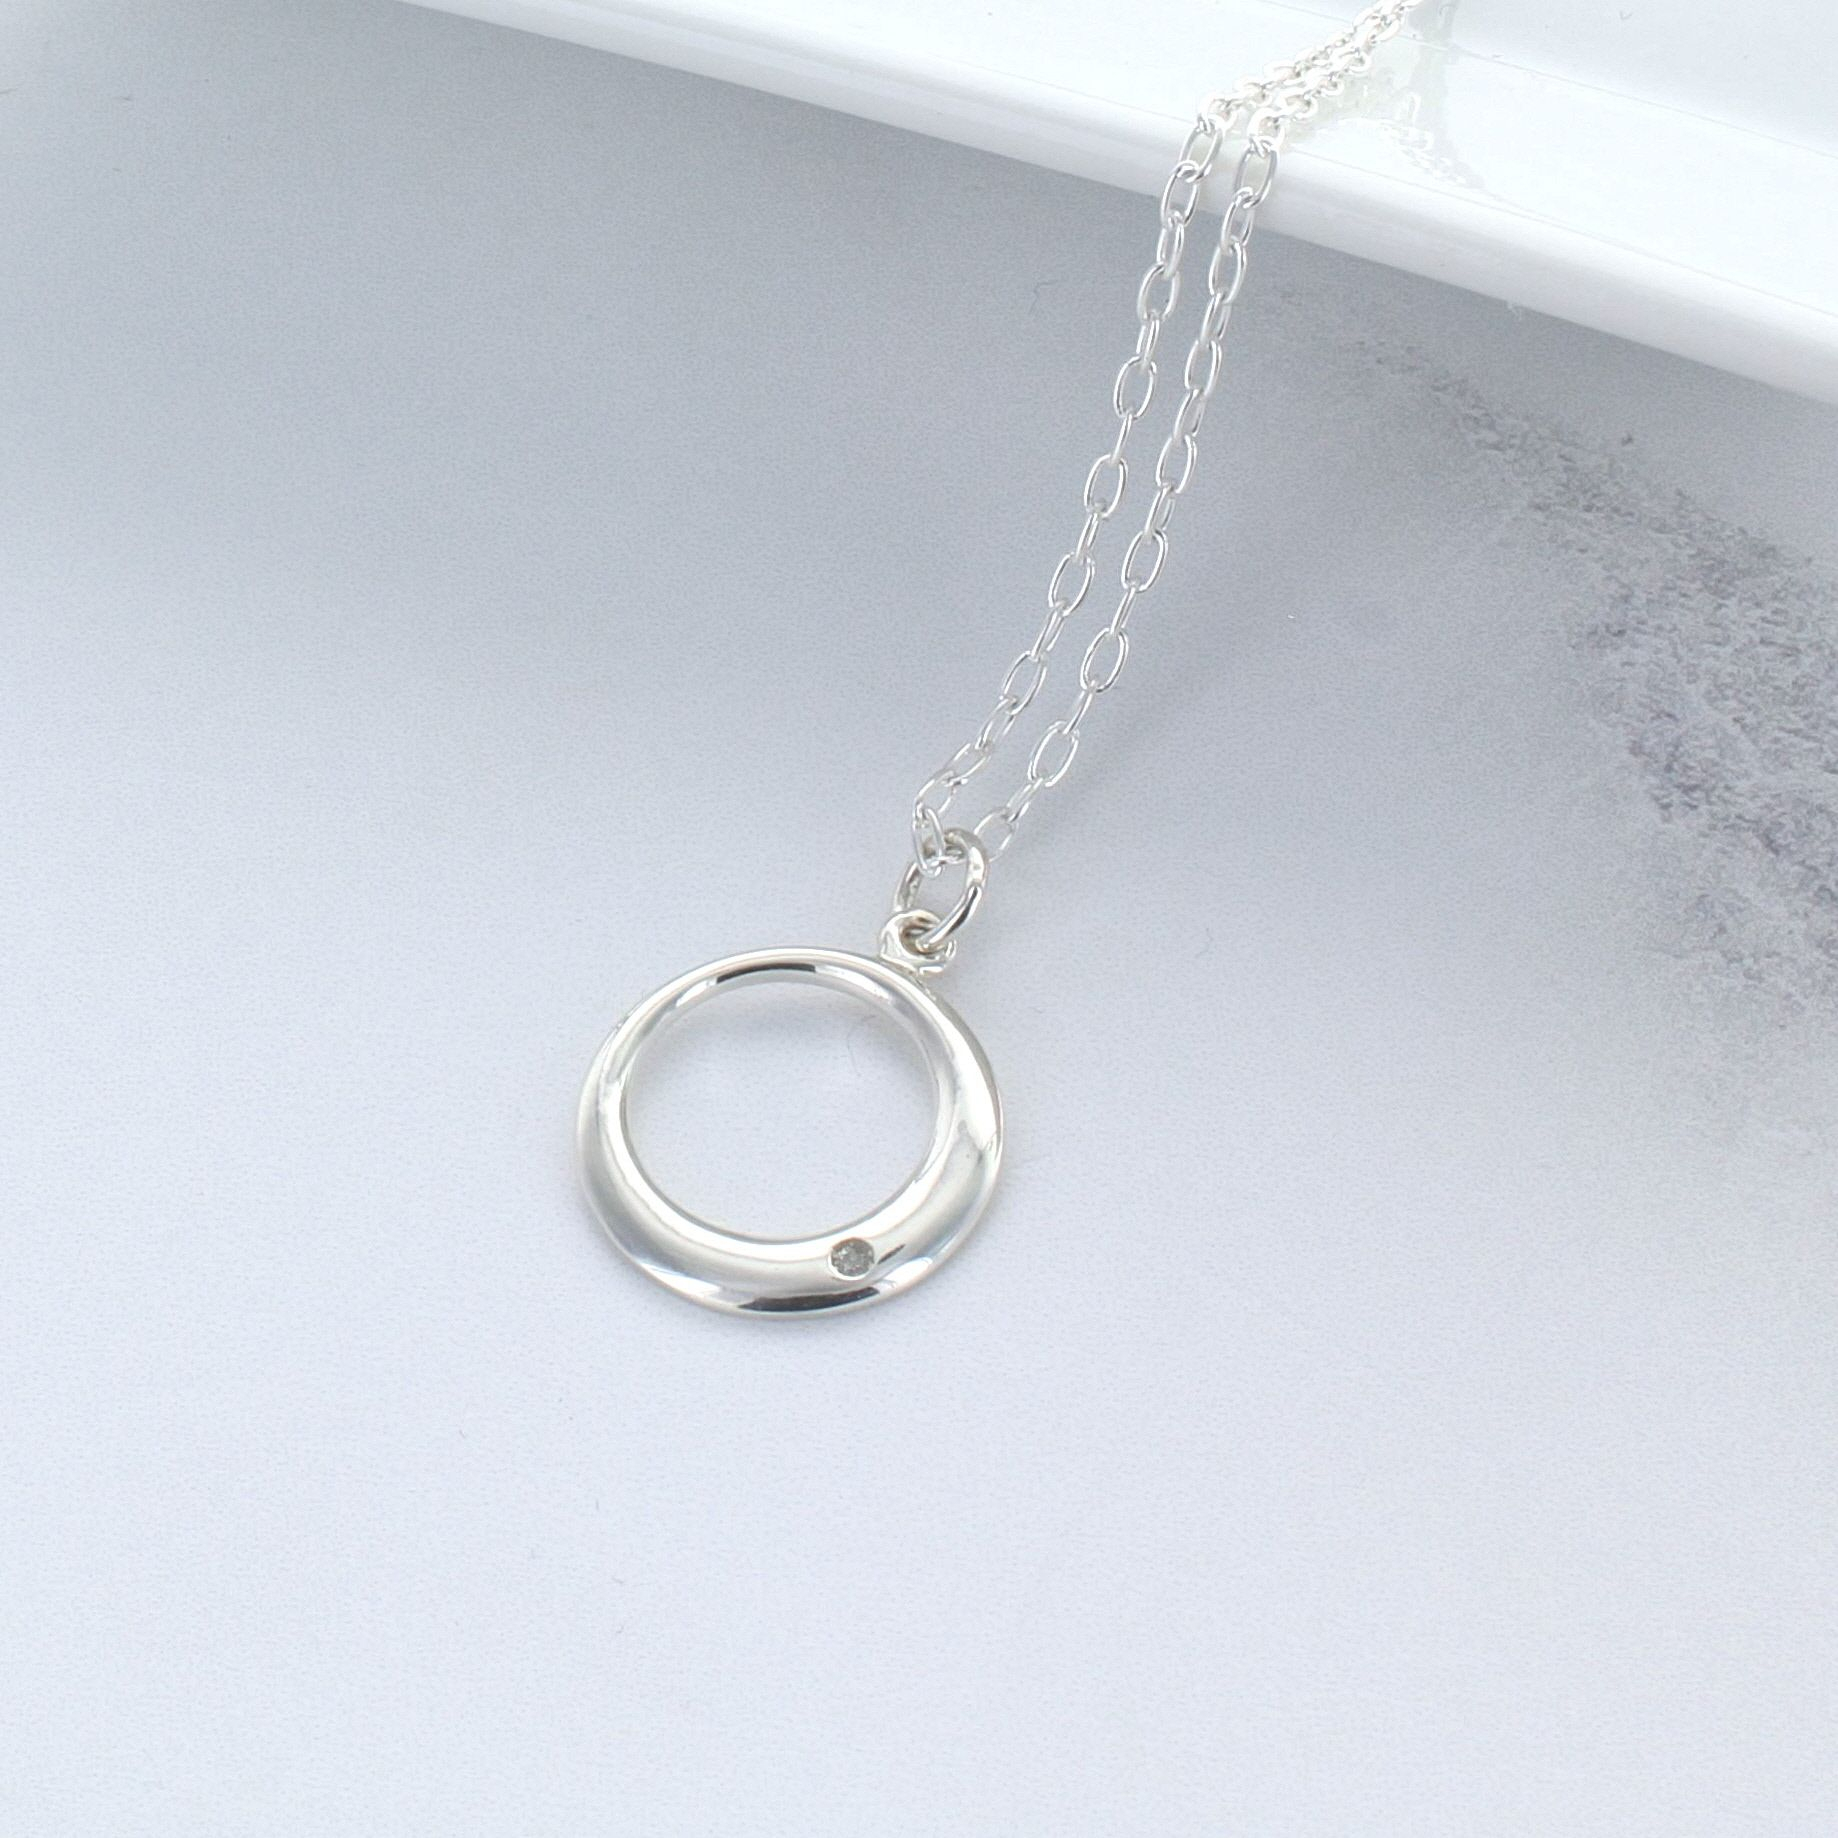 Circle Of Life Diamond Necklace With Recent Classic Cable Chain Necklaces (View 11 of 25)